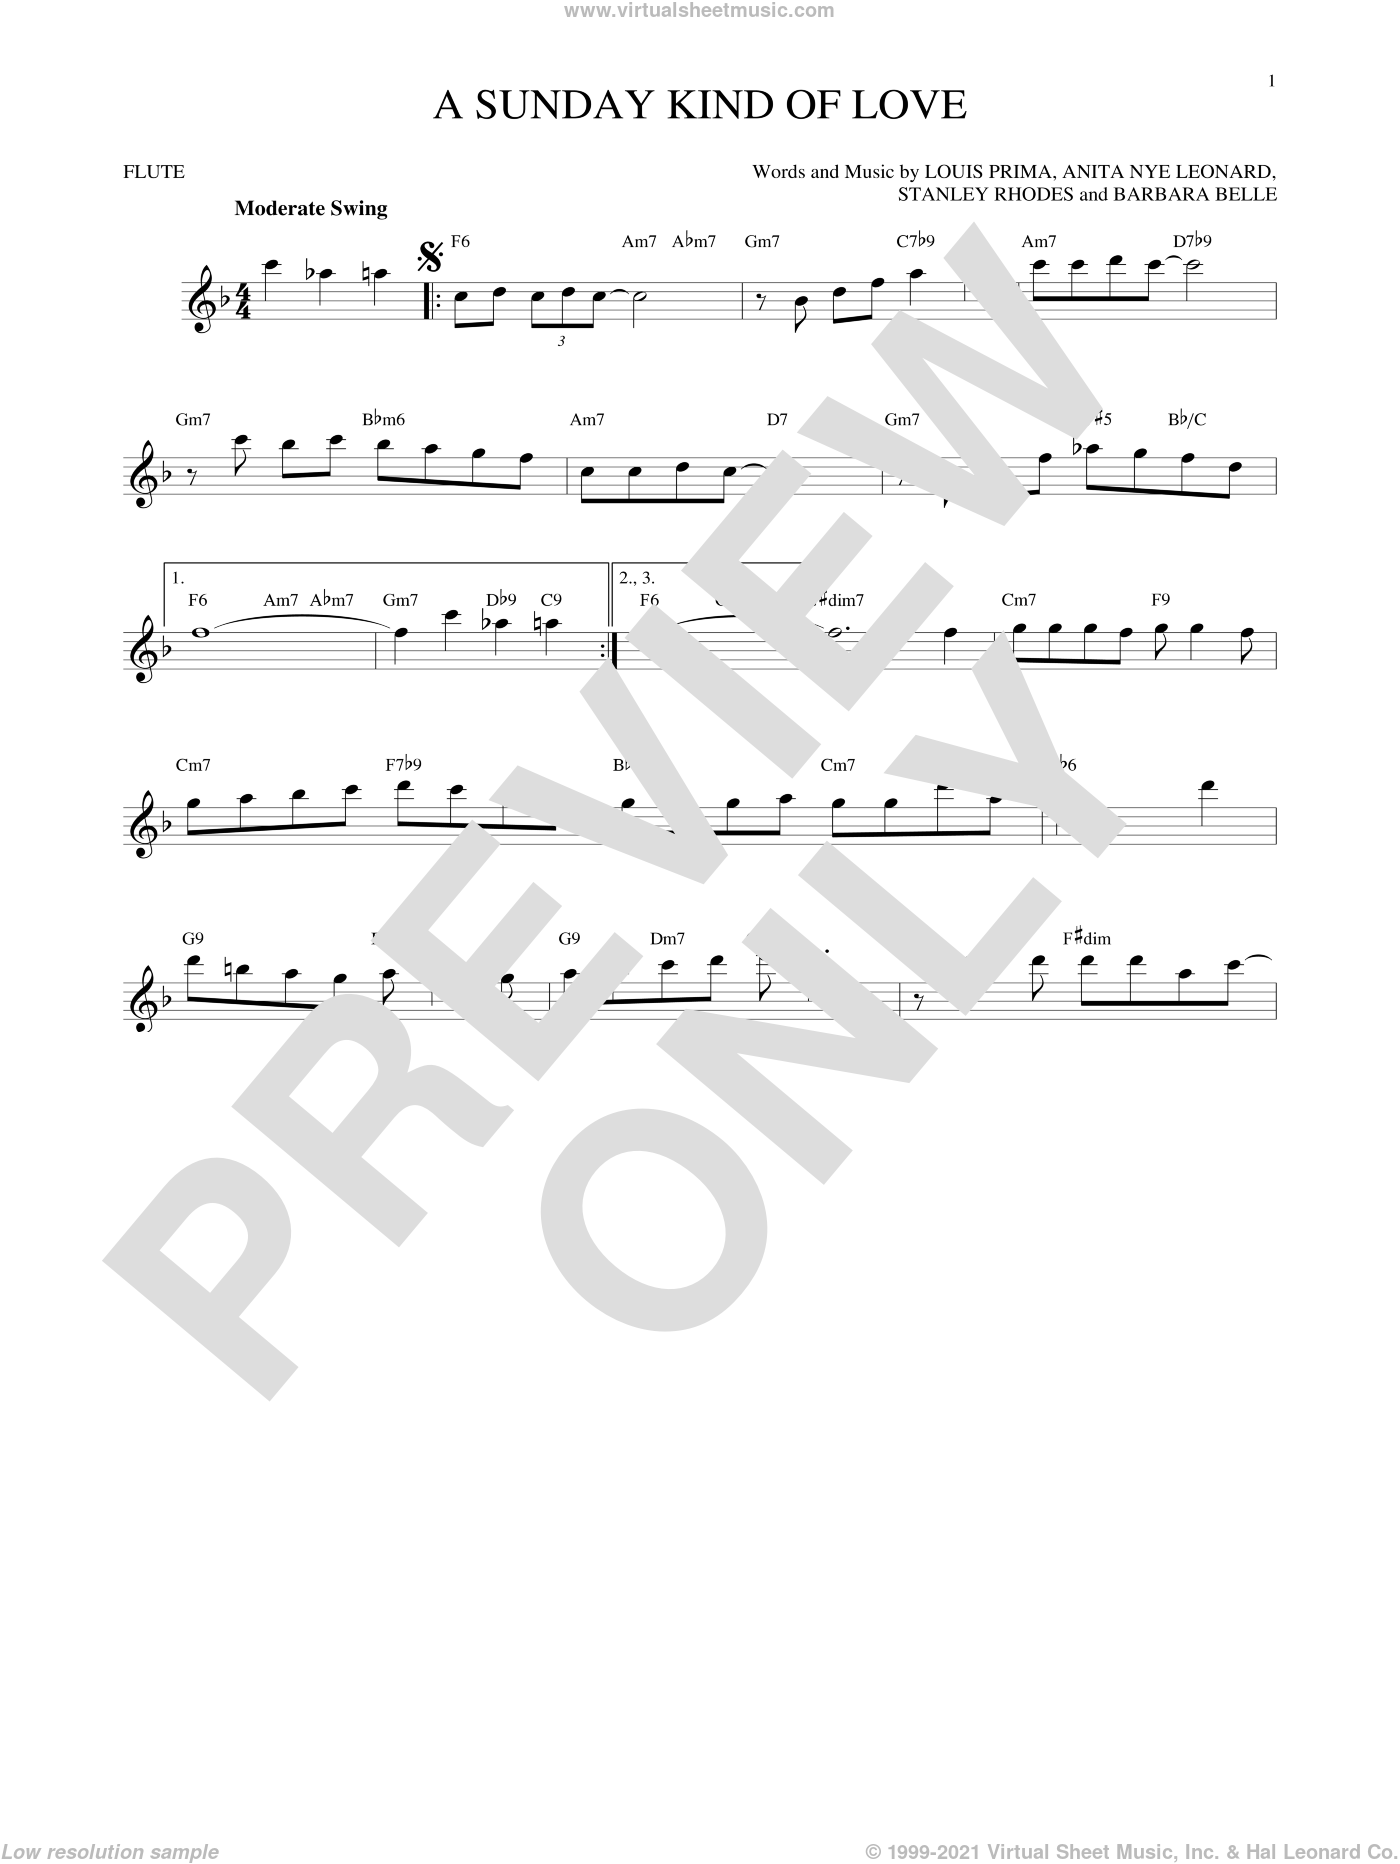 A Sunday Kind Of Love sheet music for flute solo by Etta James, Reba McEntire, Anita Nye Leonard, Barbara Belle, Louis Prima and Stanley Rhodes, intermediate skill level